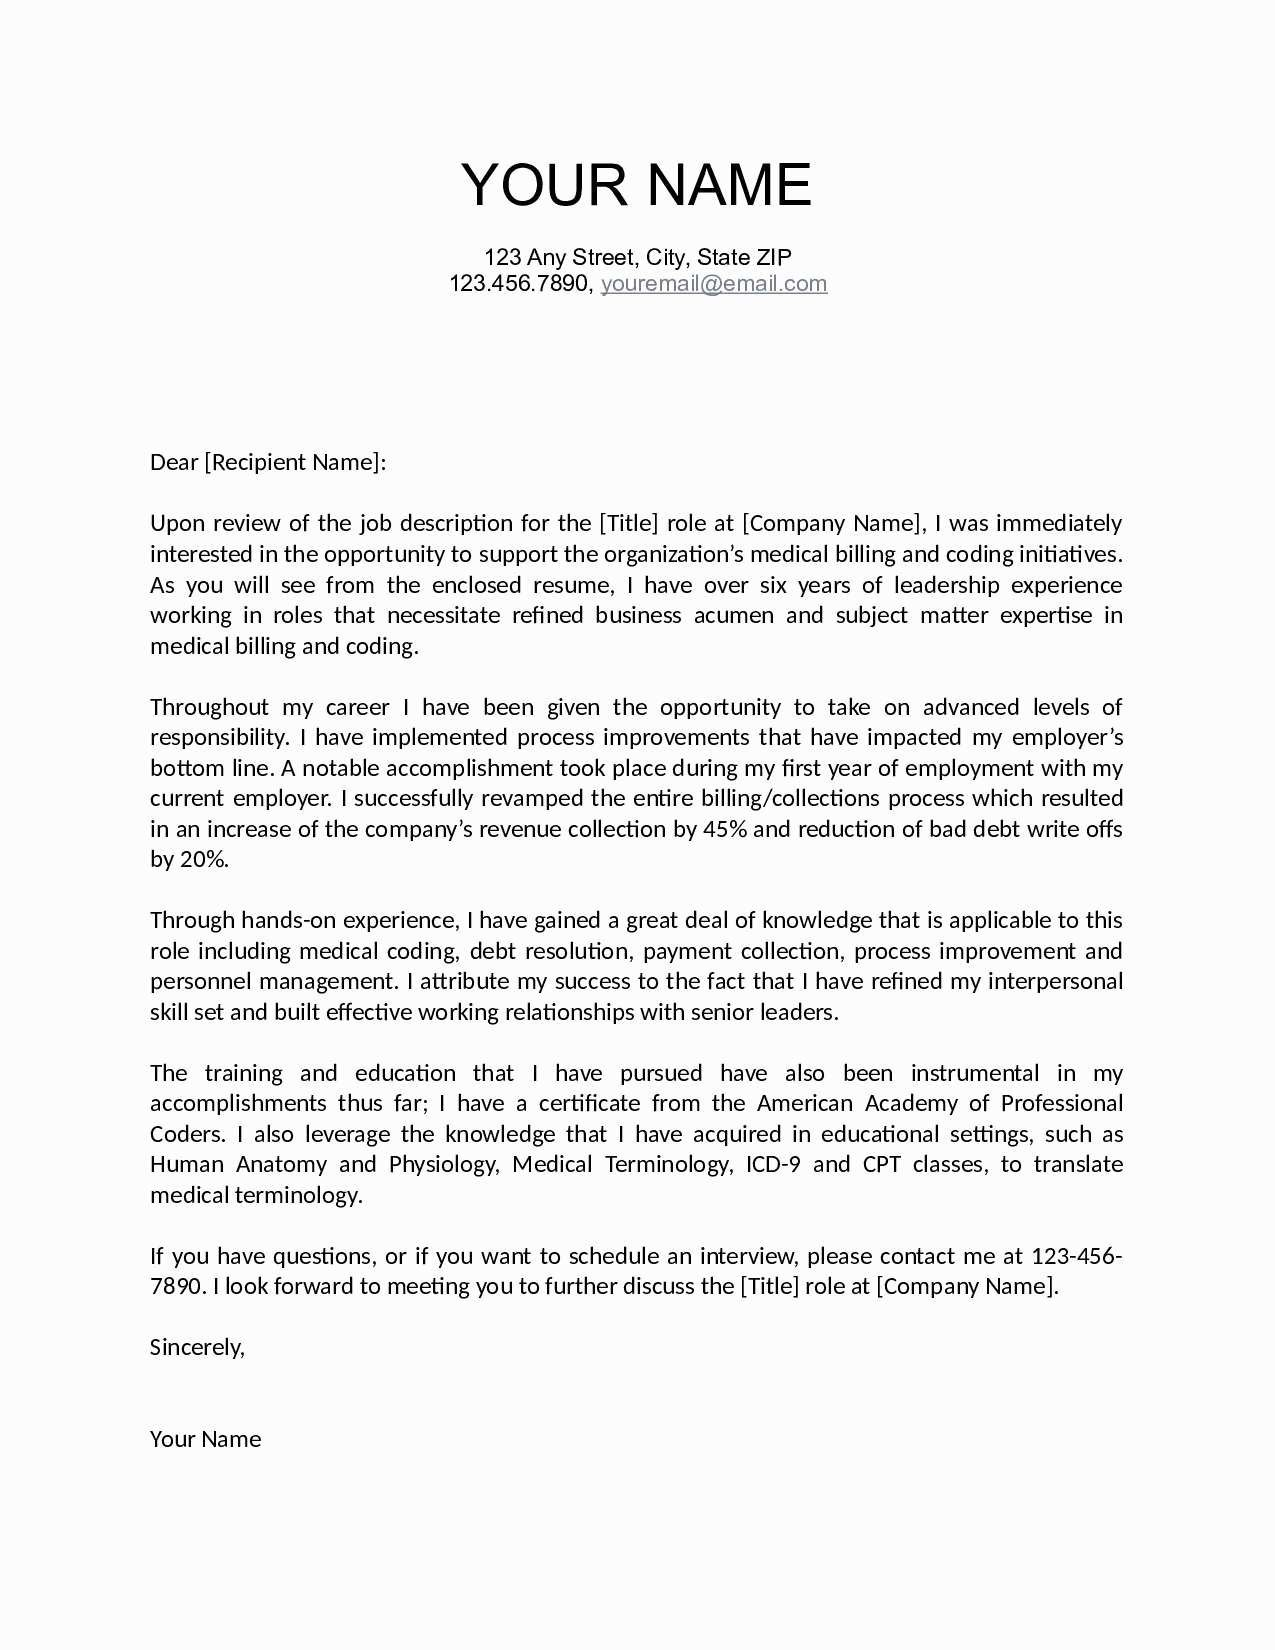 Email Cover Letter Template - Cover Letter for Oil and Gas Job Save Lovely Job Fer Letter Template